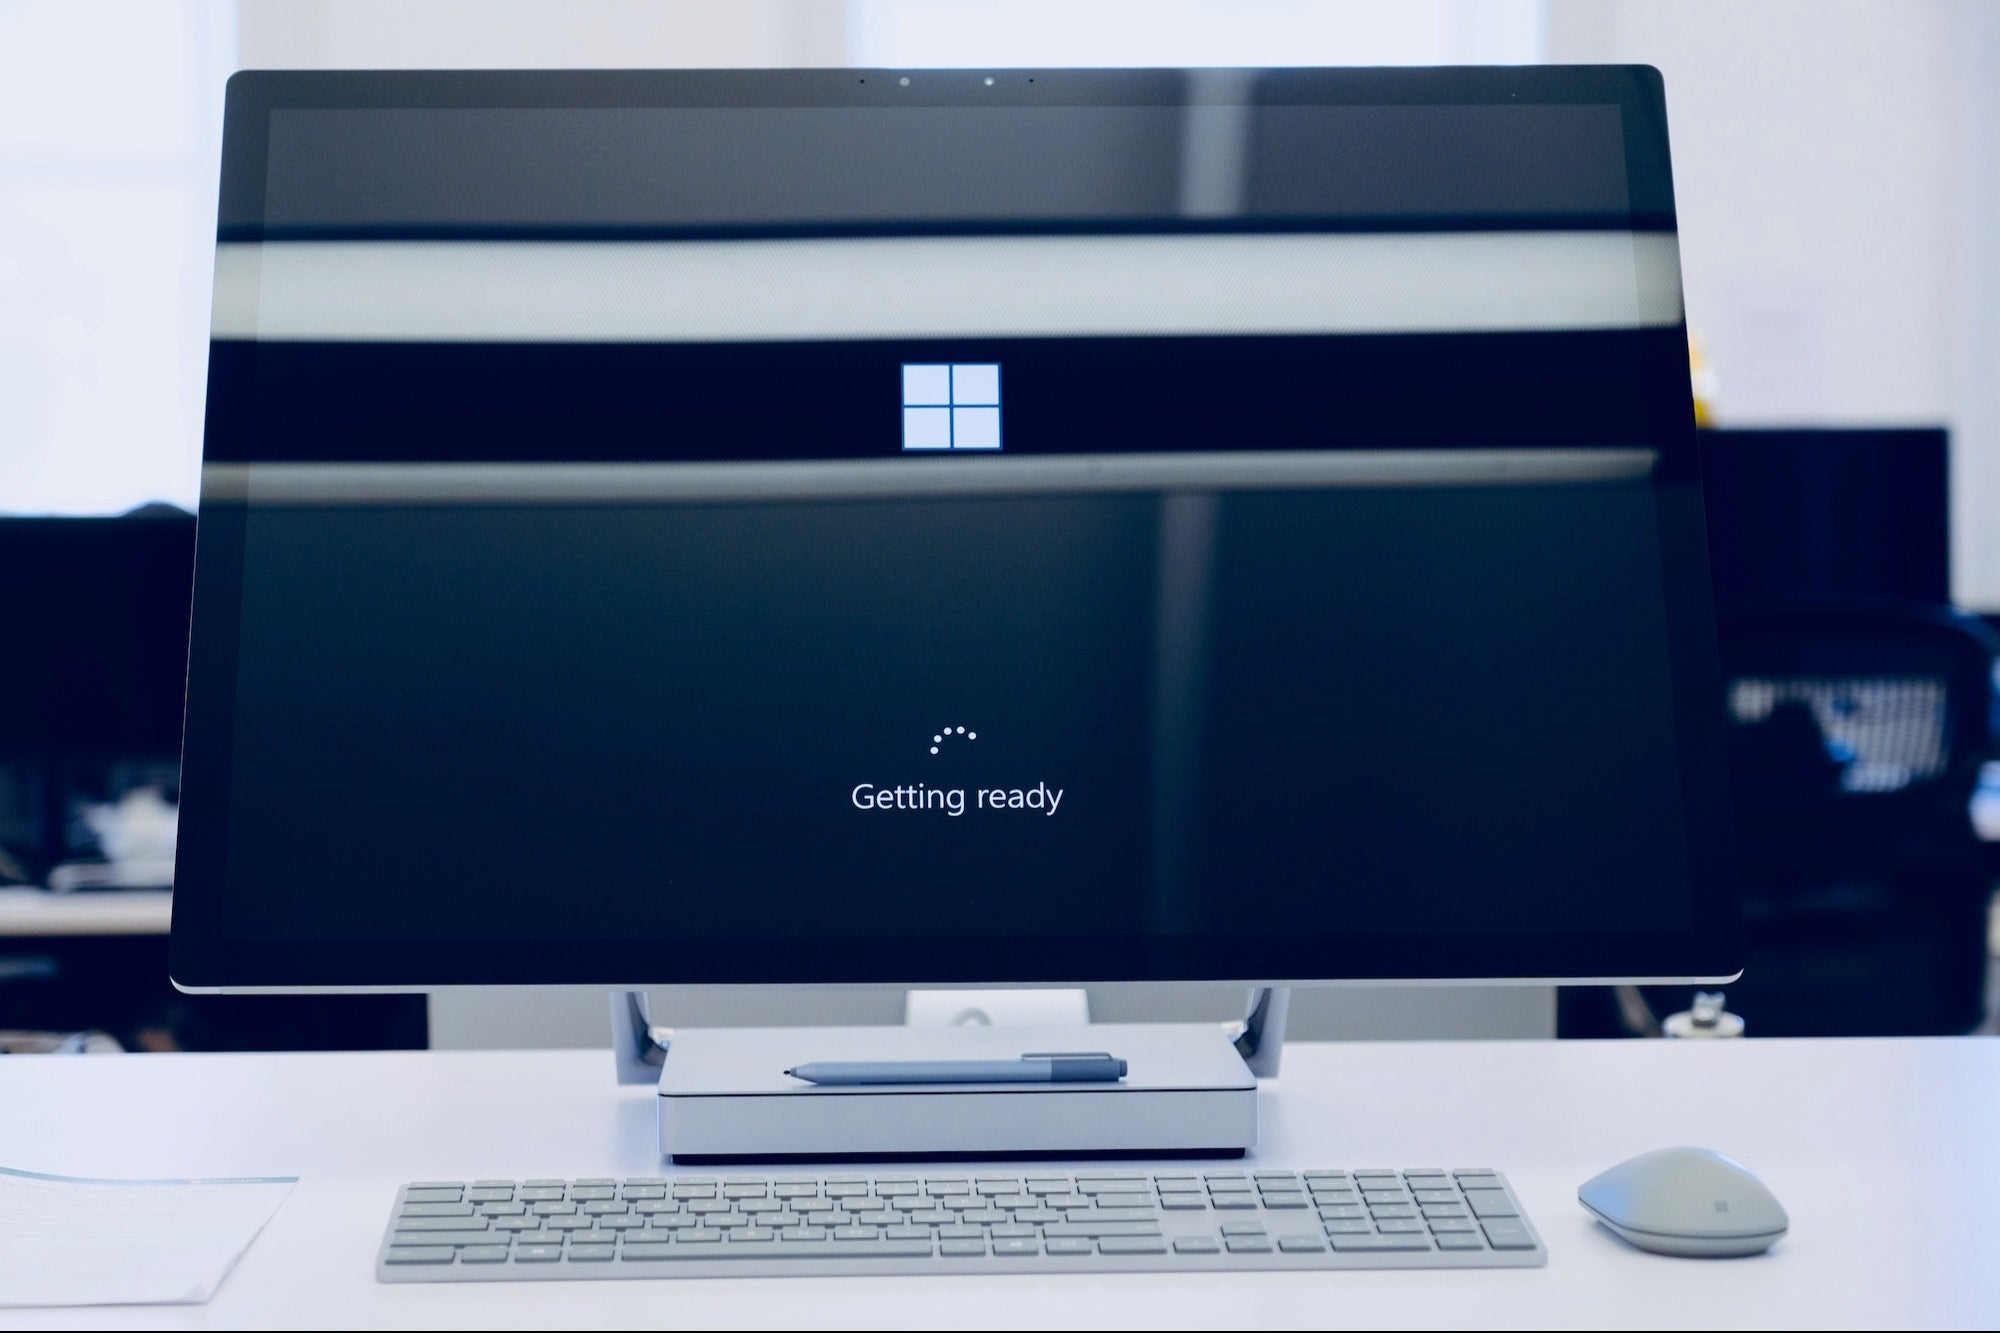 Learn Everything You Need to Know About Microsoft Windows 11 Before Launch